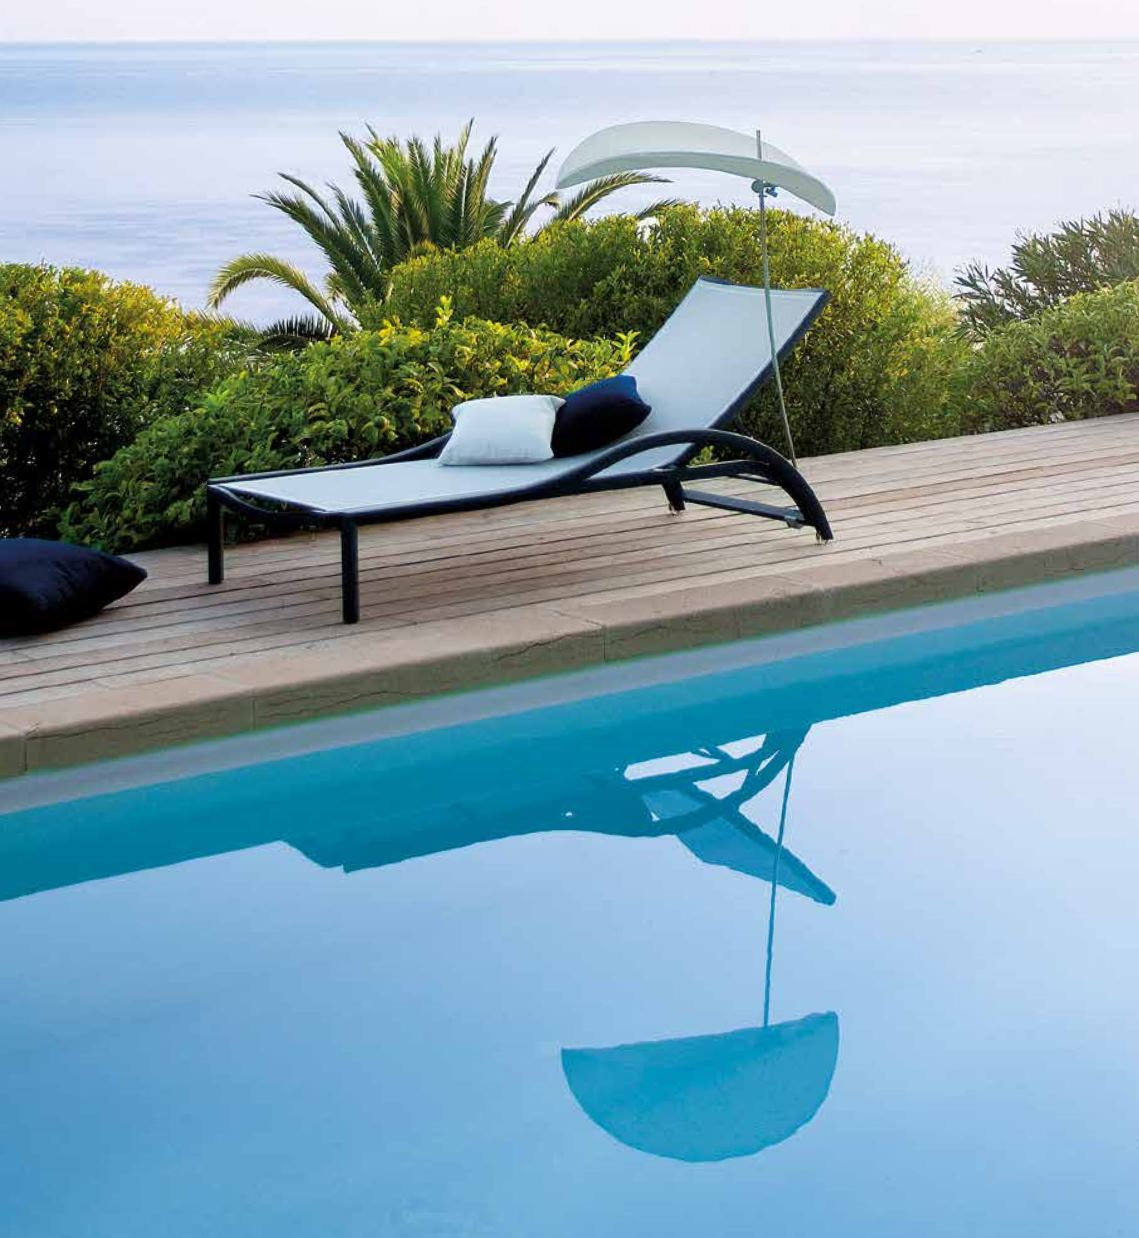 Sunbathing Chairs Premiere Sunbathing Chair By Ego Paris Discounted Clearance 70